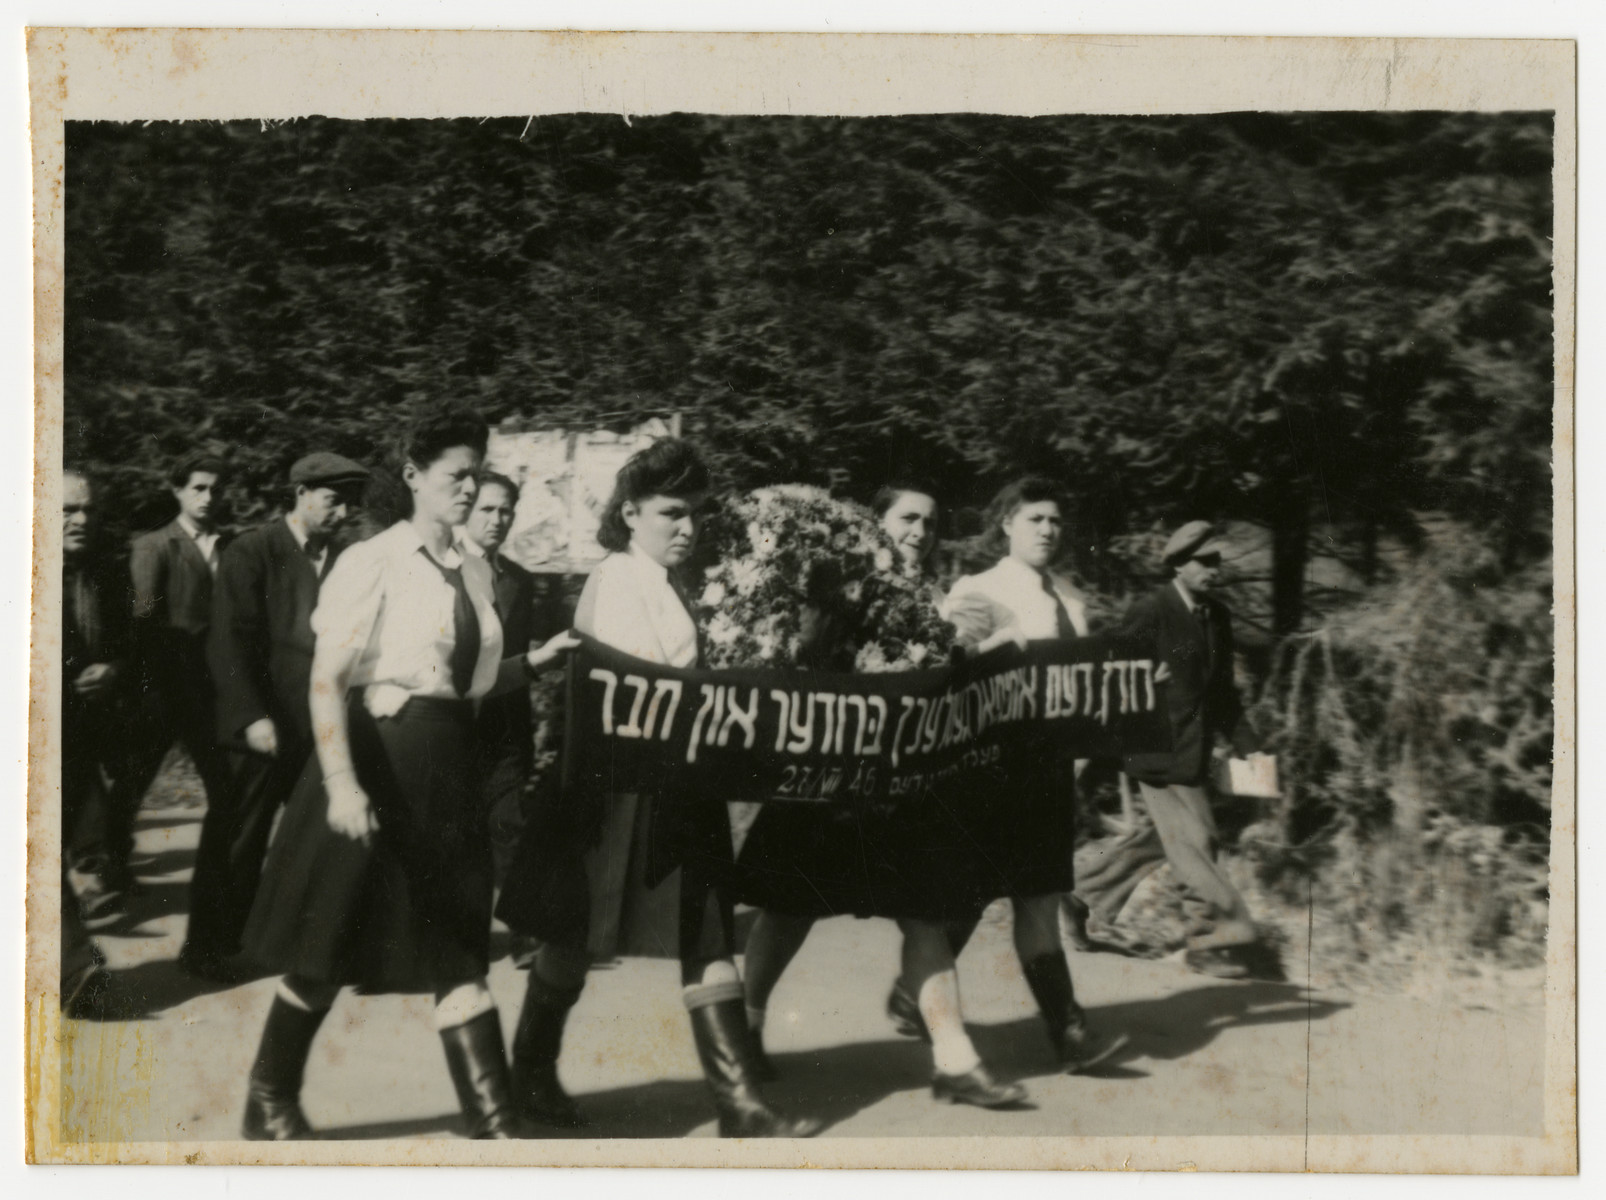 "Women march in a funeral procession carrying a banner in memory of their ""brother and friend""  This is possibly the funeral for David Kabesicki.  Among those pictured are Rifka Krasner (second from the left) and Jenta Szapiro (third from the left)."